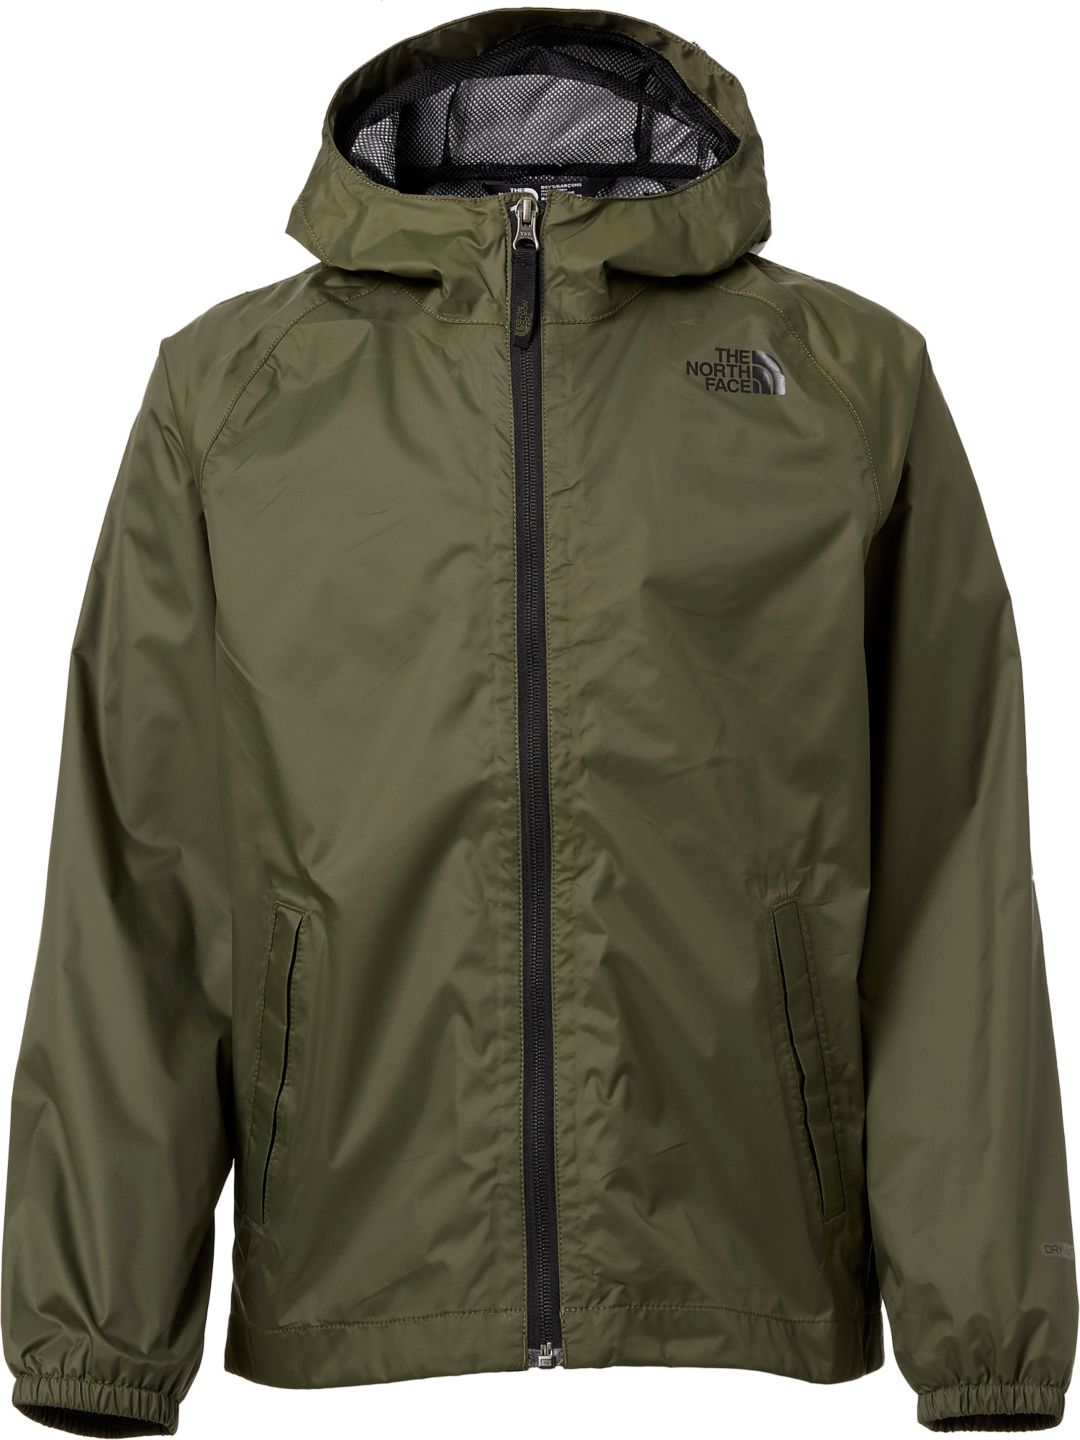 b062f728 The North Face Boys' Zipline Rain Jacket | Field & Stream